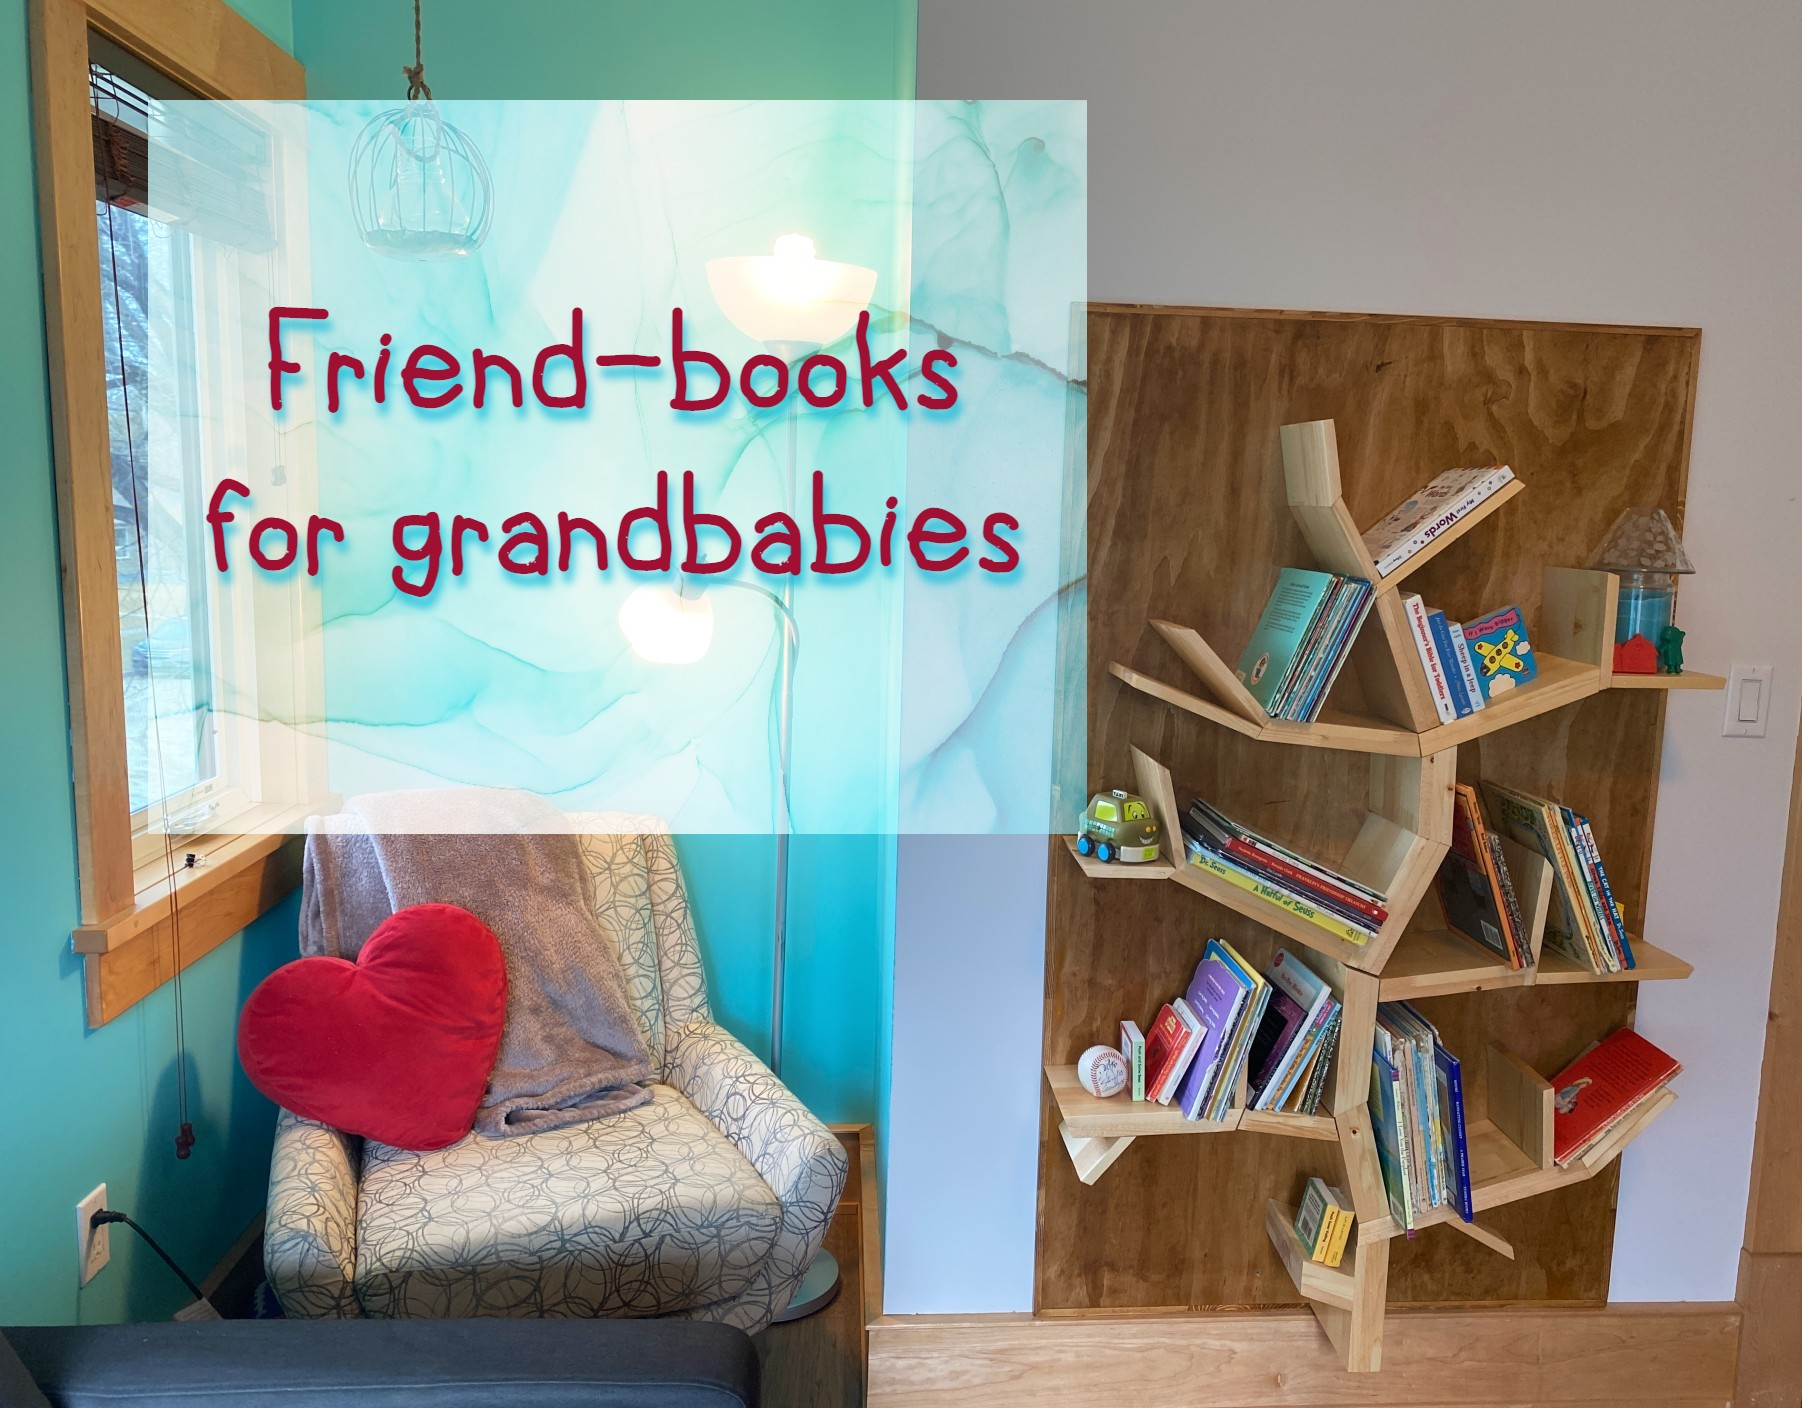 Friend-books for grandbabies